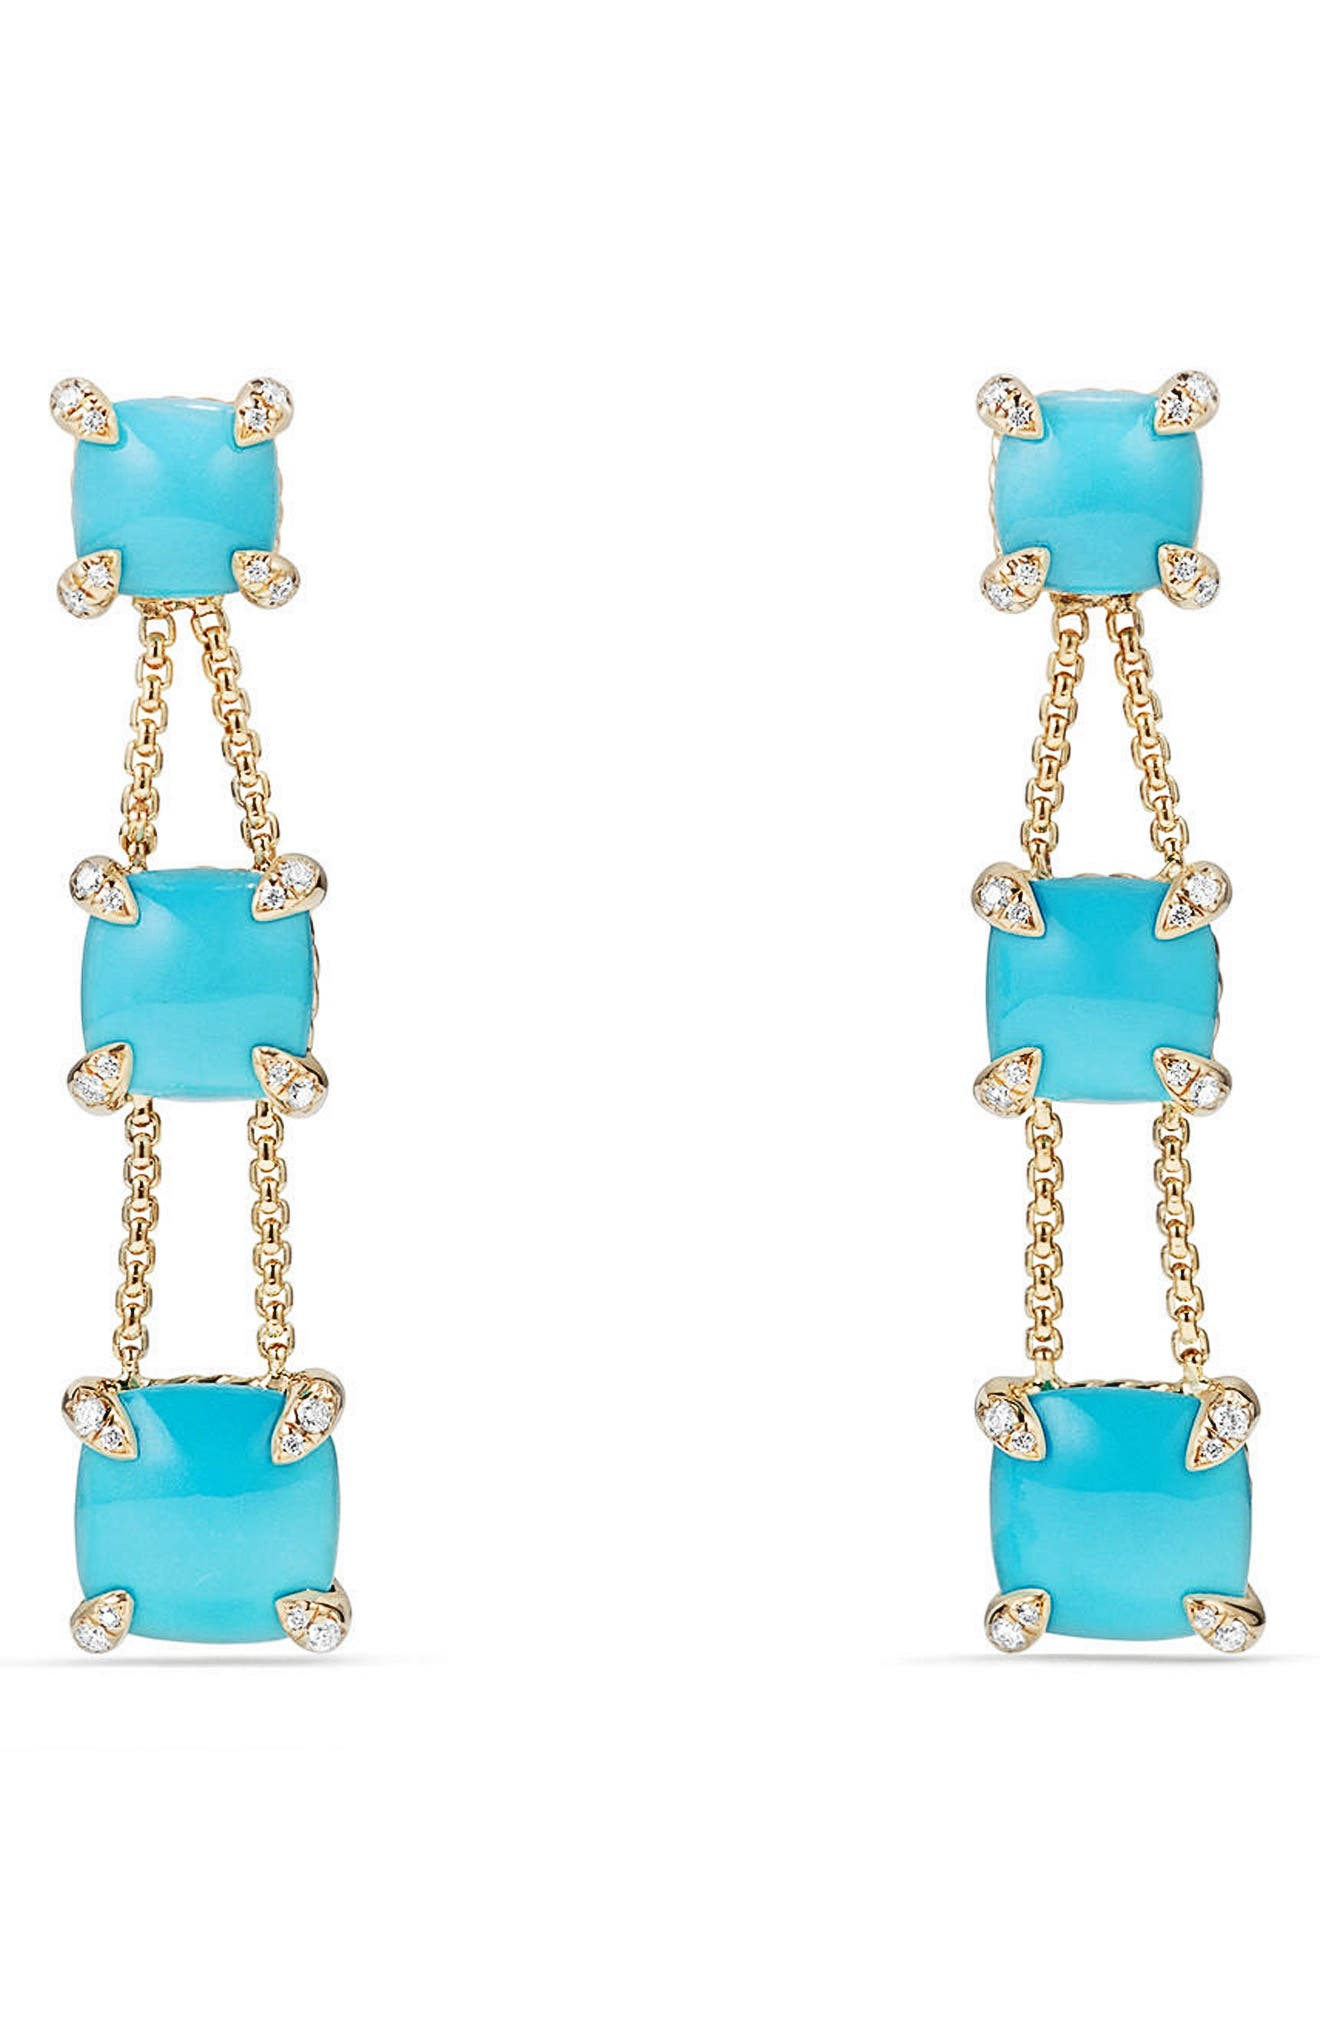 Châtelaine Linear Chain Earrings in 18K Gold with Semiprecious Stone and Diamonds,                             Main thumbnail 1, color,                             TURQUOISE